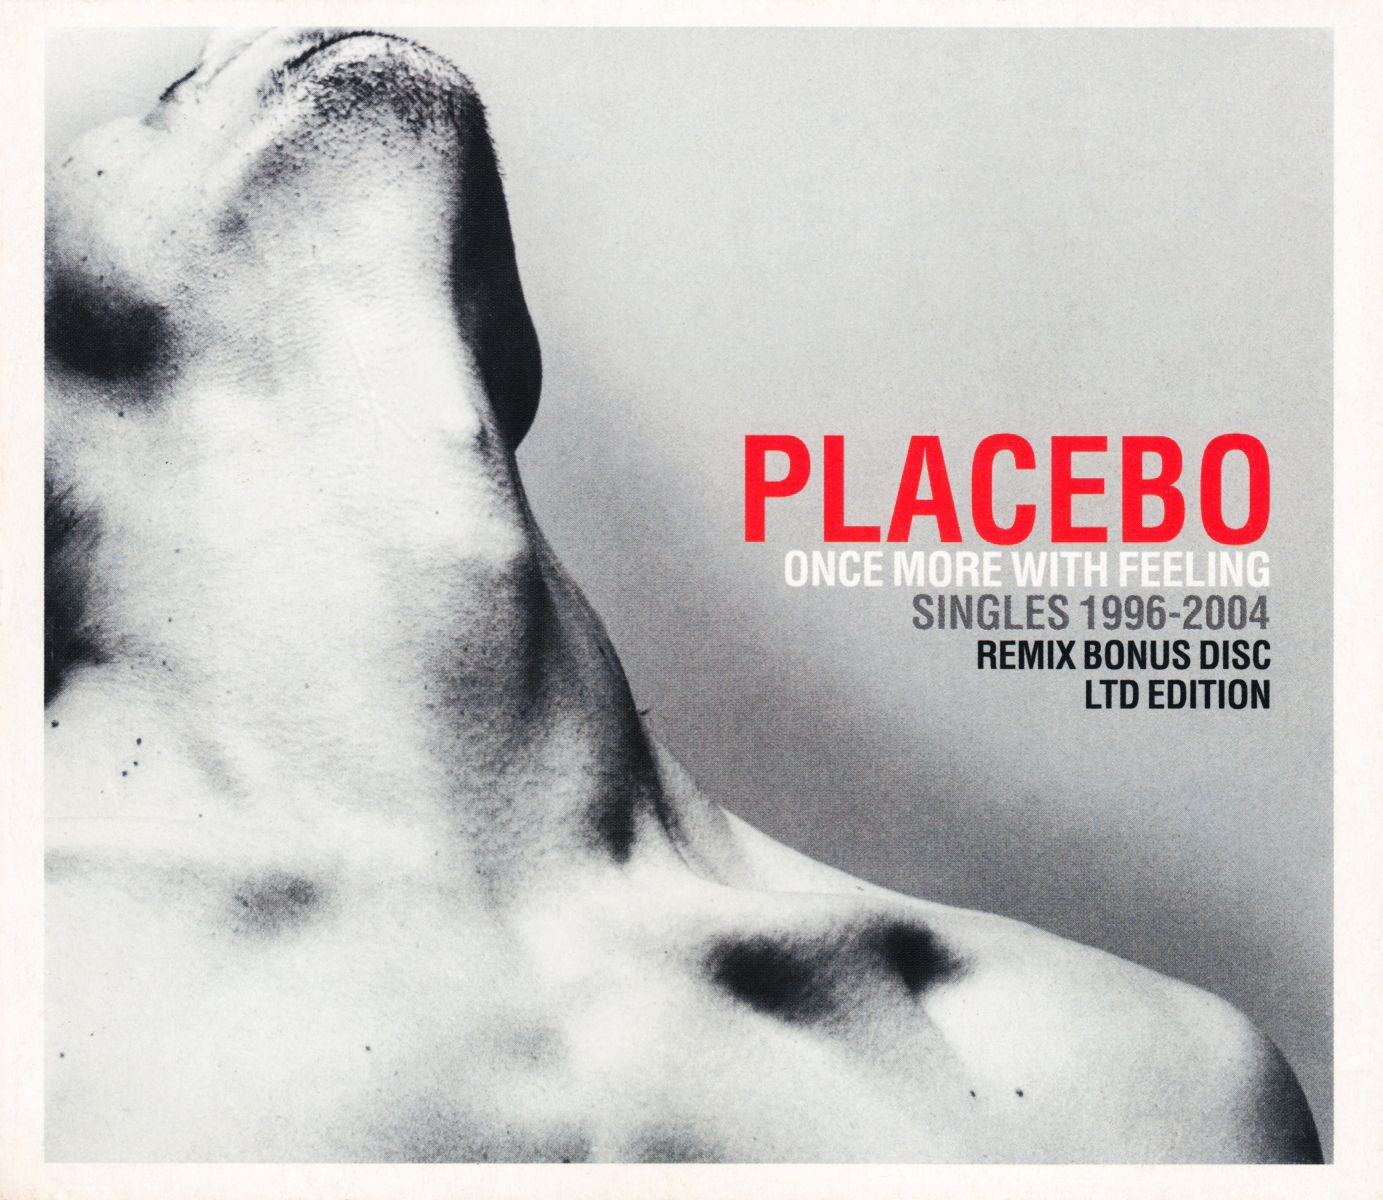 Placebo - Once More With Feeling - Singles 1996-2004 album cover